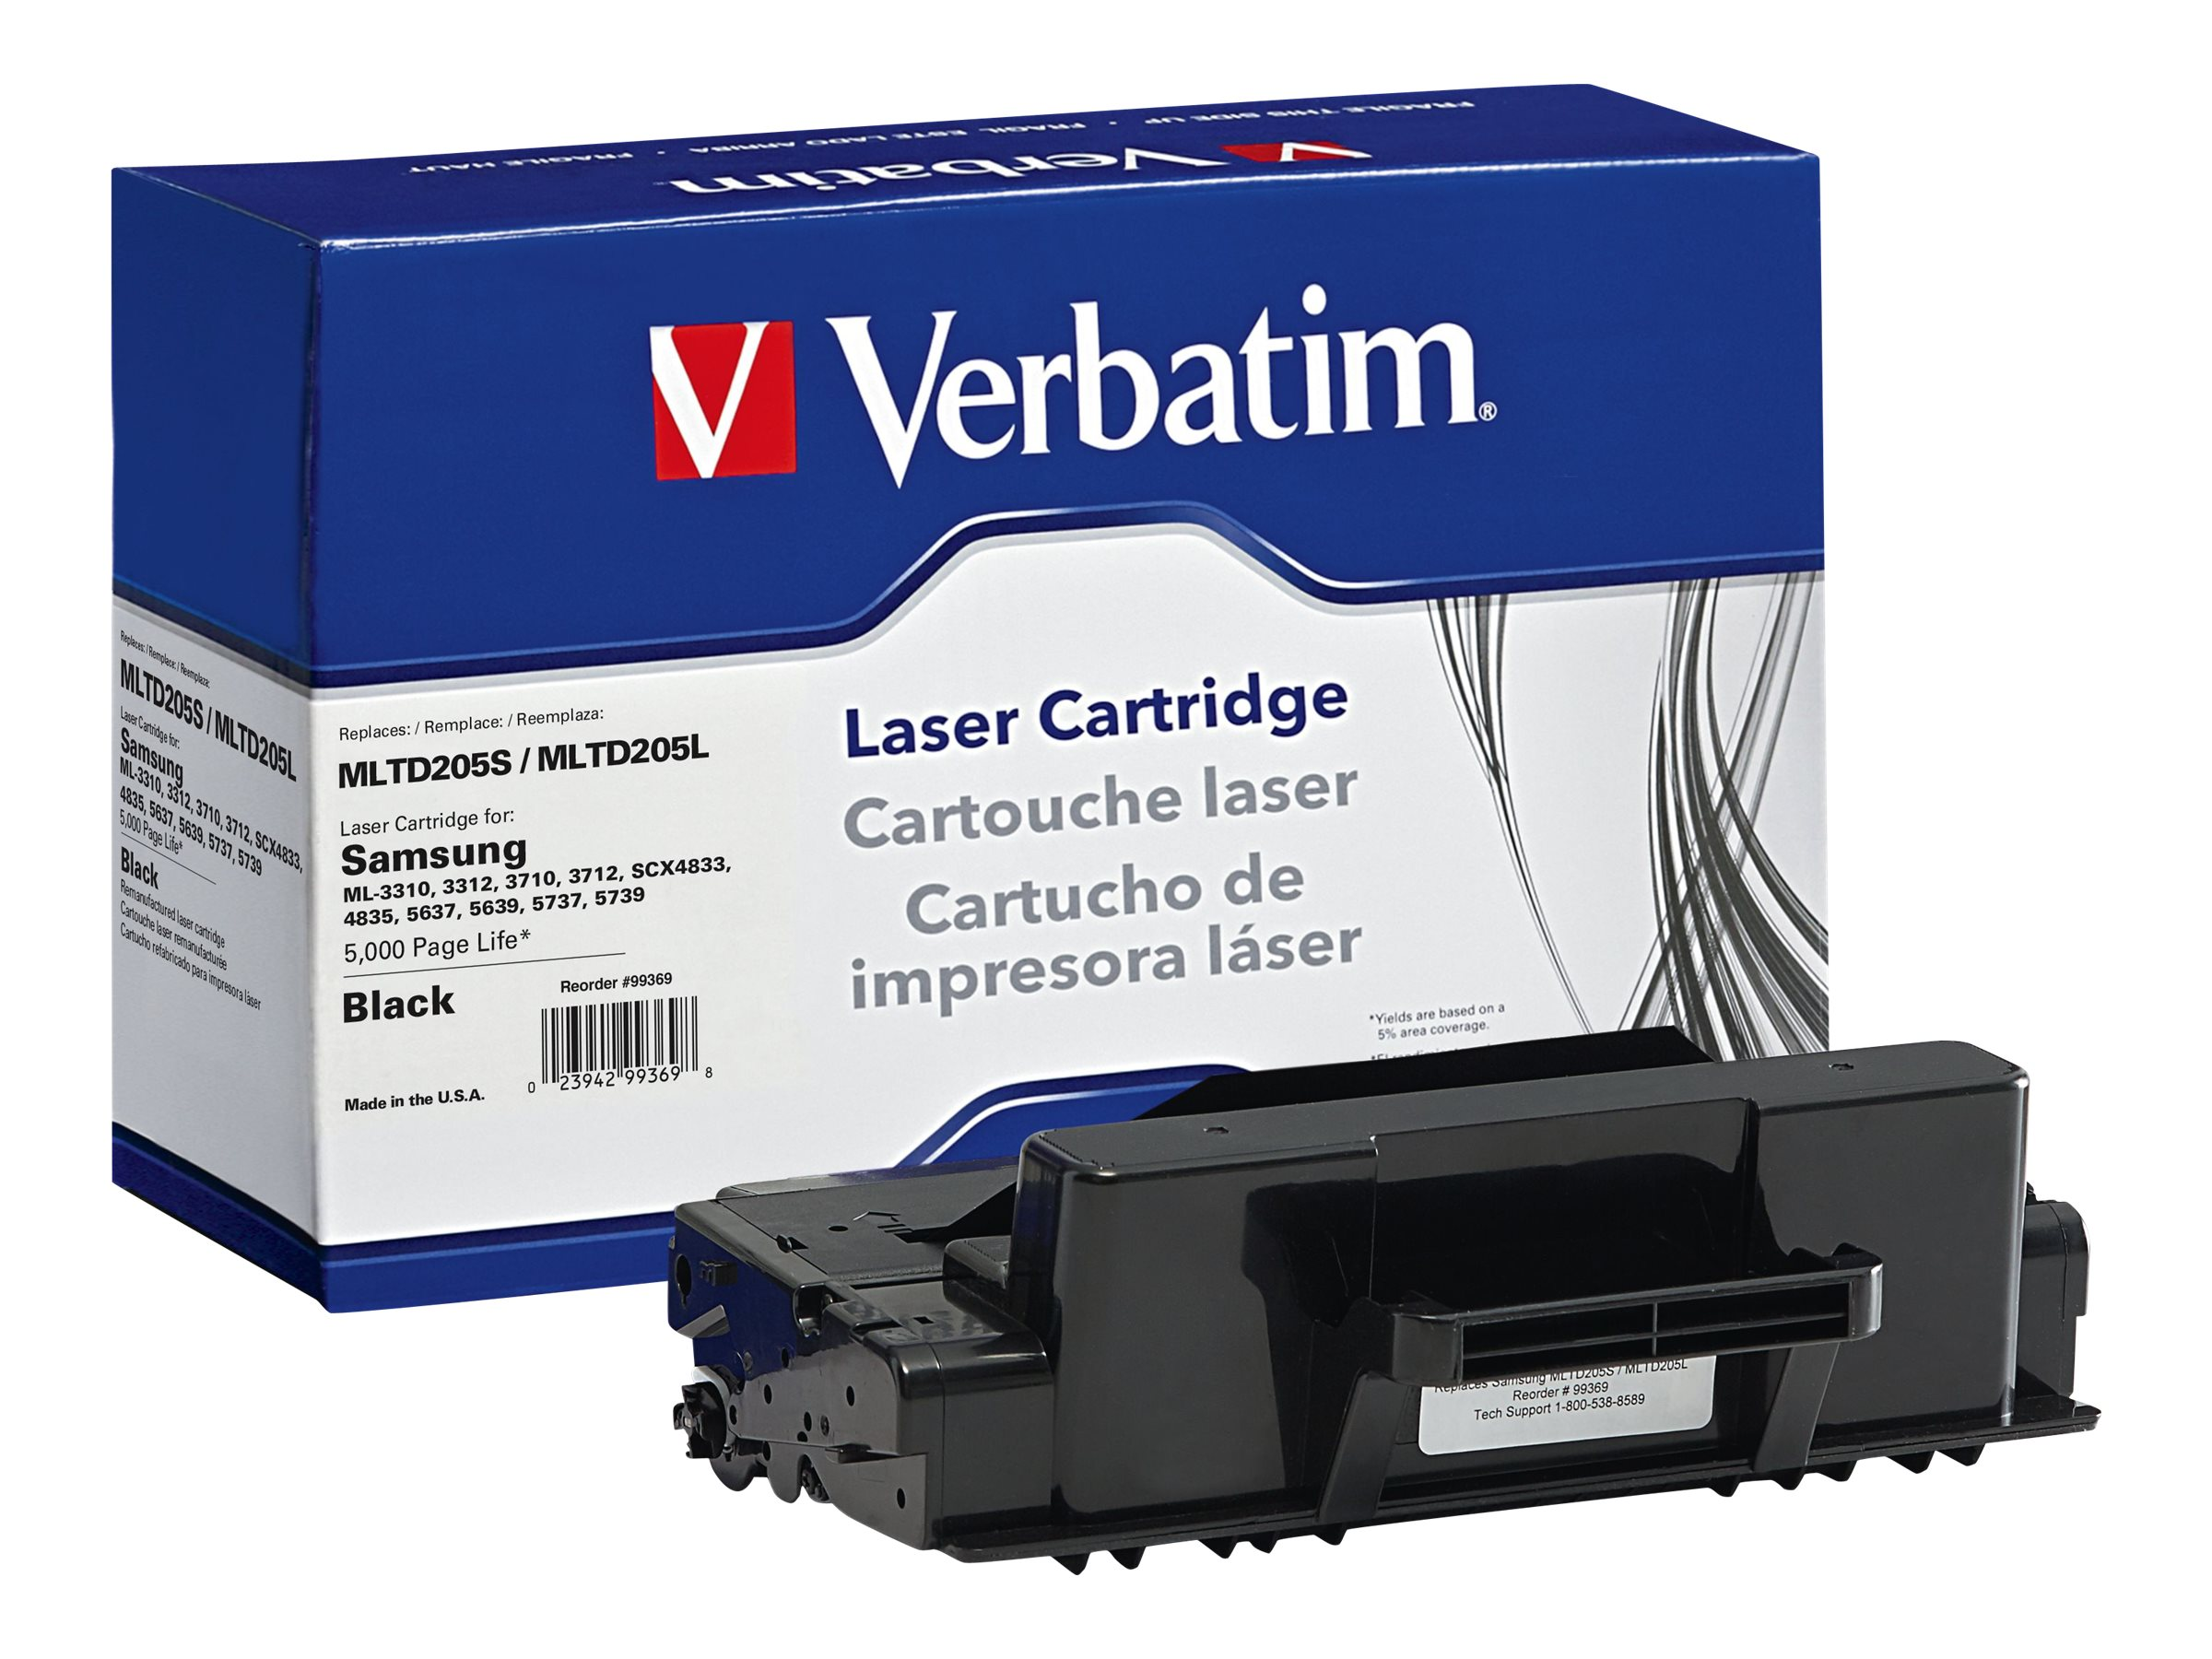 Verbatim MLTD205S MLTD205L Toner Cartridge for Samsung, 99369